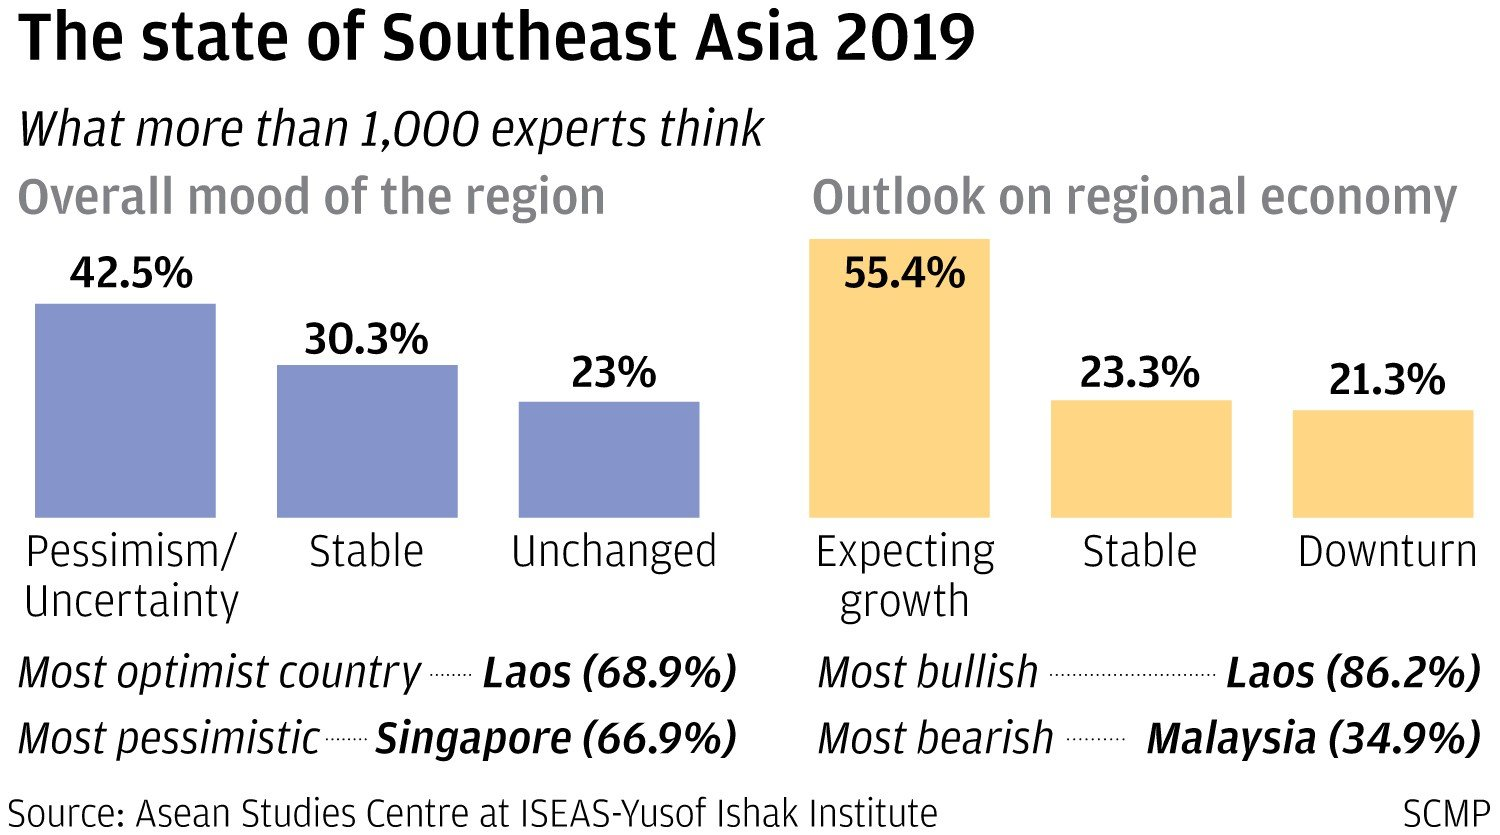 Southeast Asia has major doubts about US reliability in the region